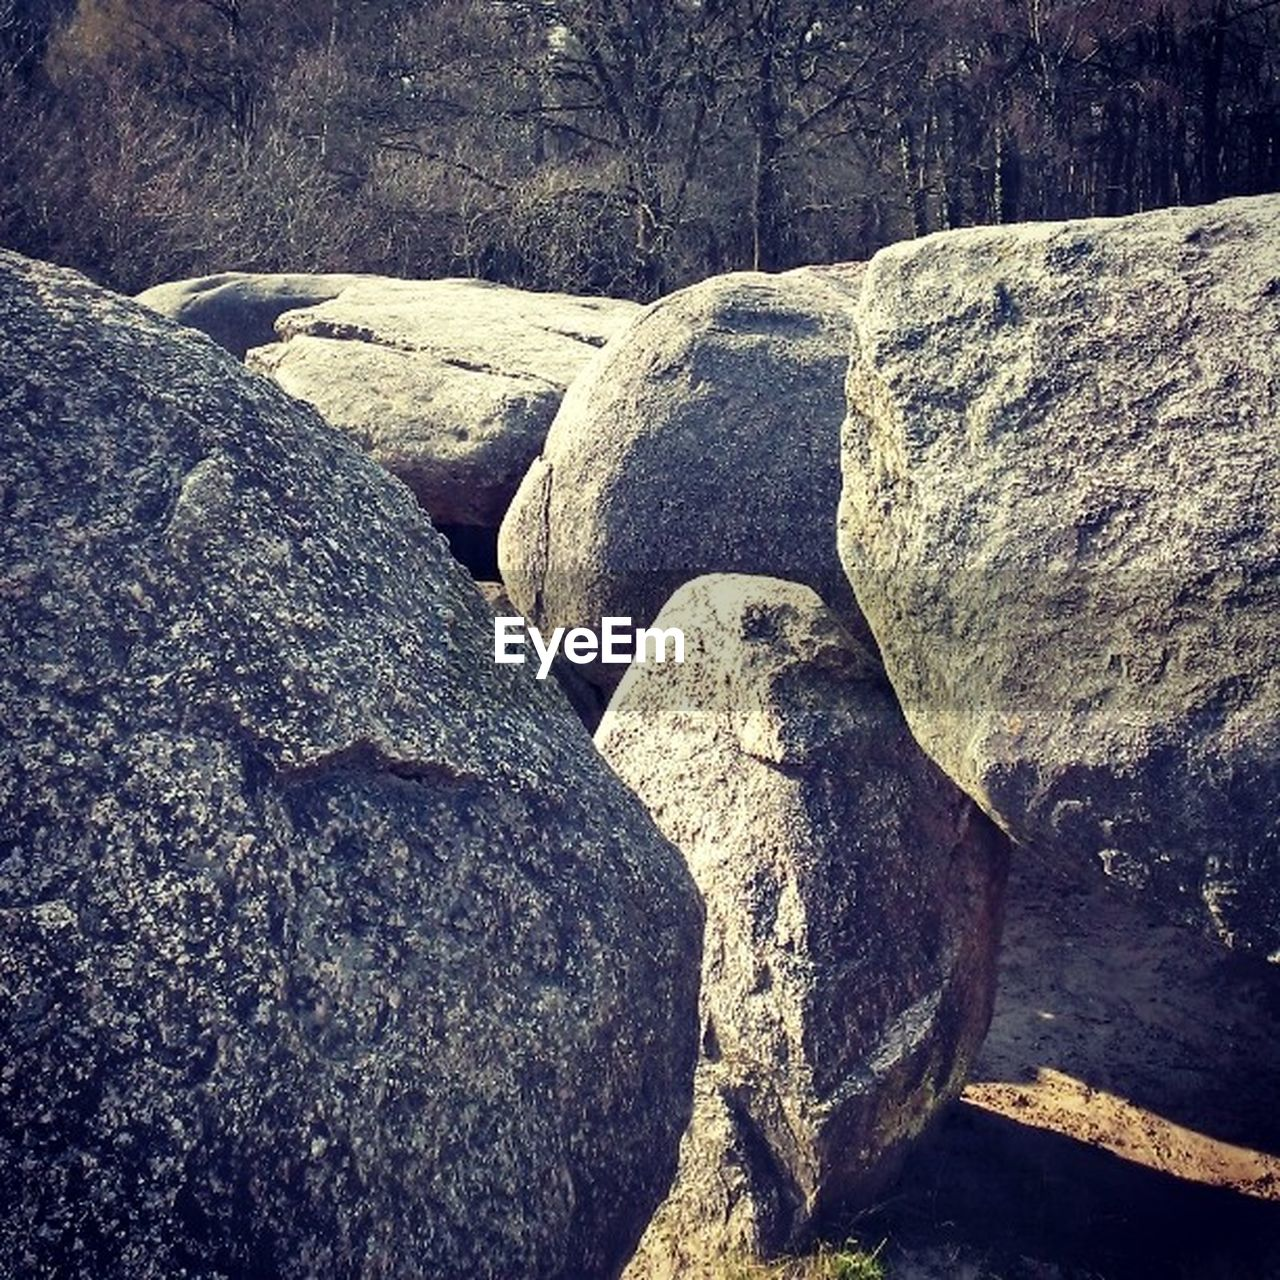 rock, solid, rock - object, no people, day, nature, textured, outdoors, tranquility, rough, land, tree, rock formation, close-up, gray, tranquil scene, stone - object, plant, toughness, beauty in nature, eroded